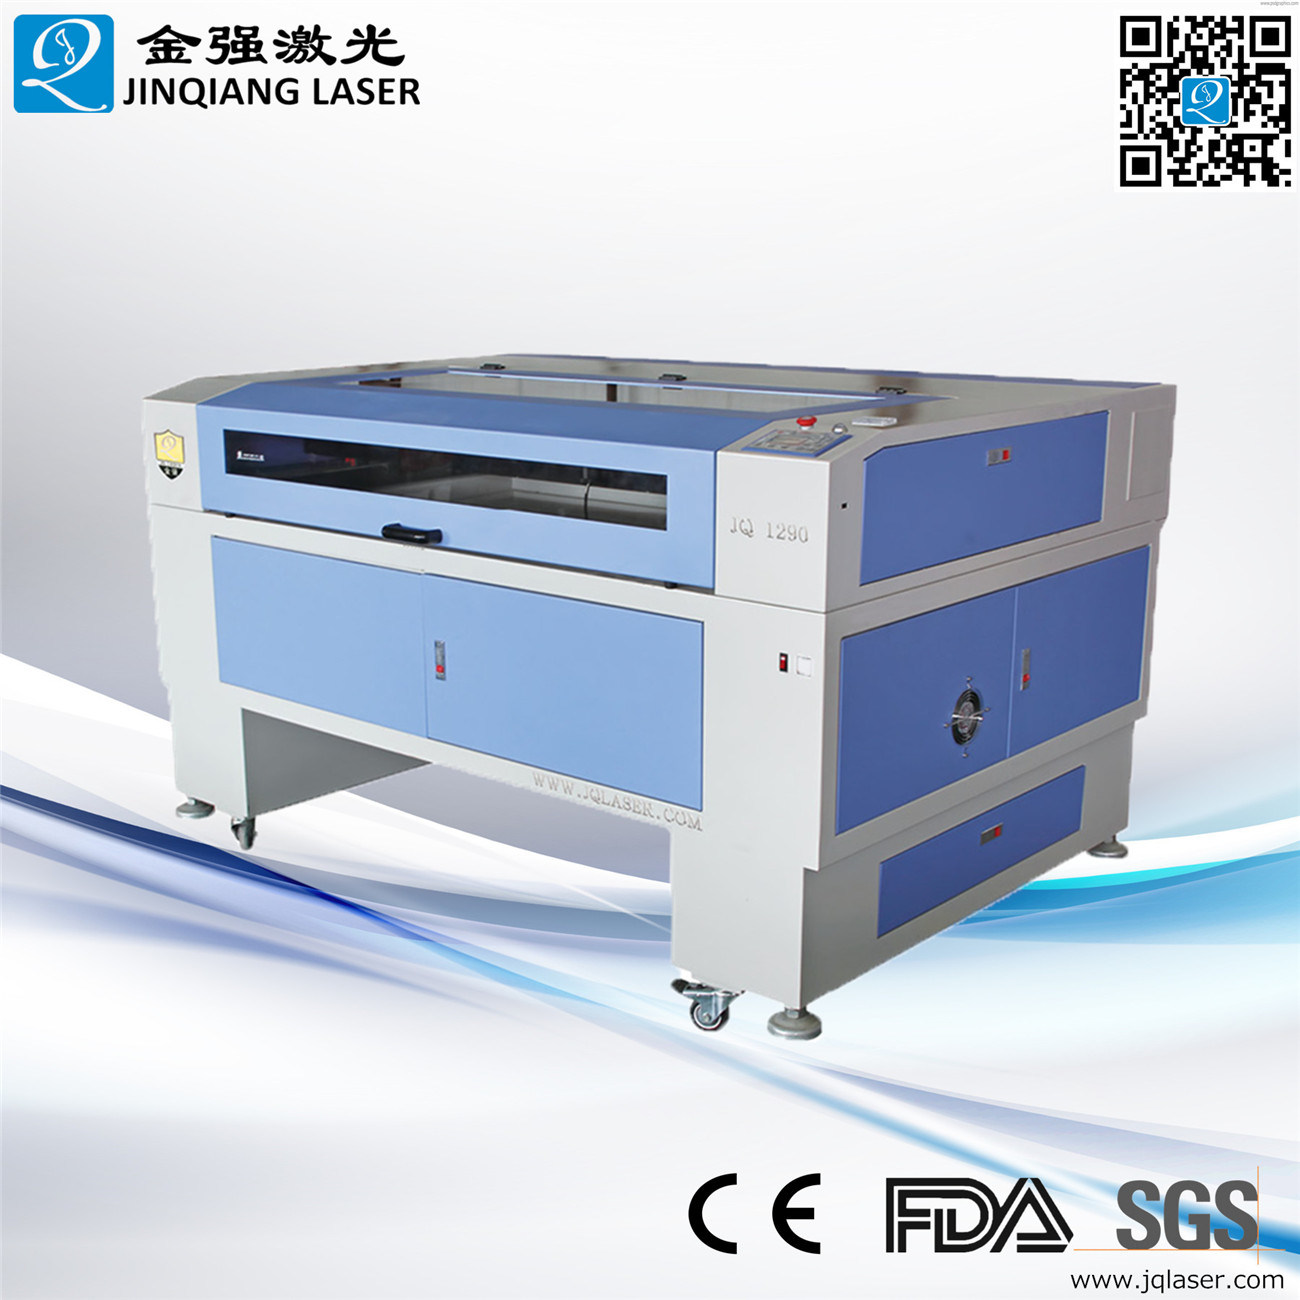 Hot Sale! Laser Cutting Machine Price From Jq Laser, China